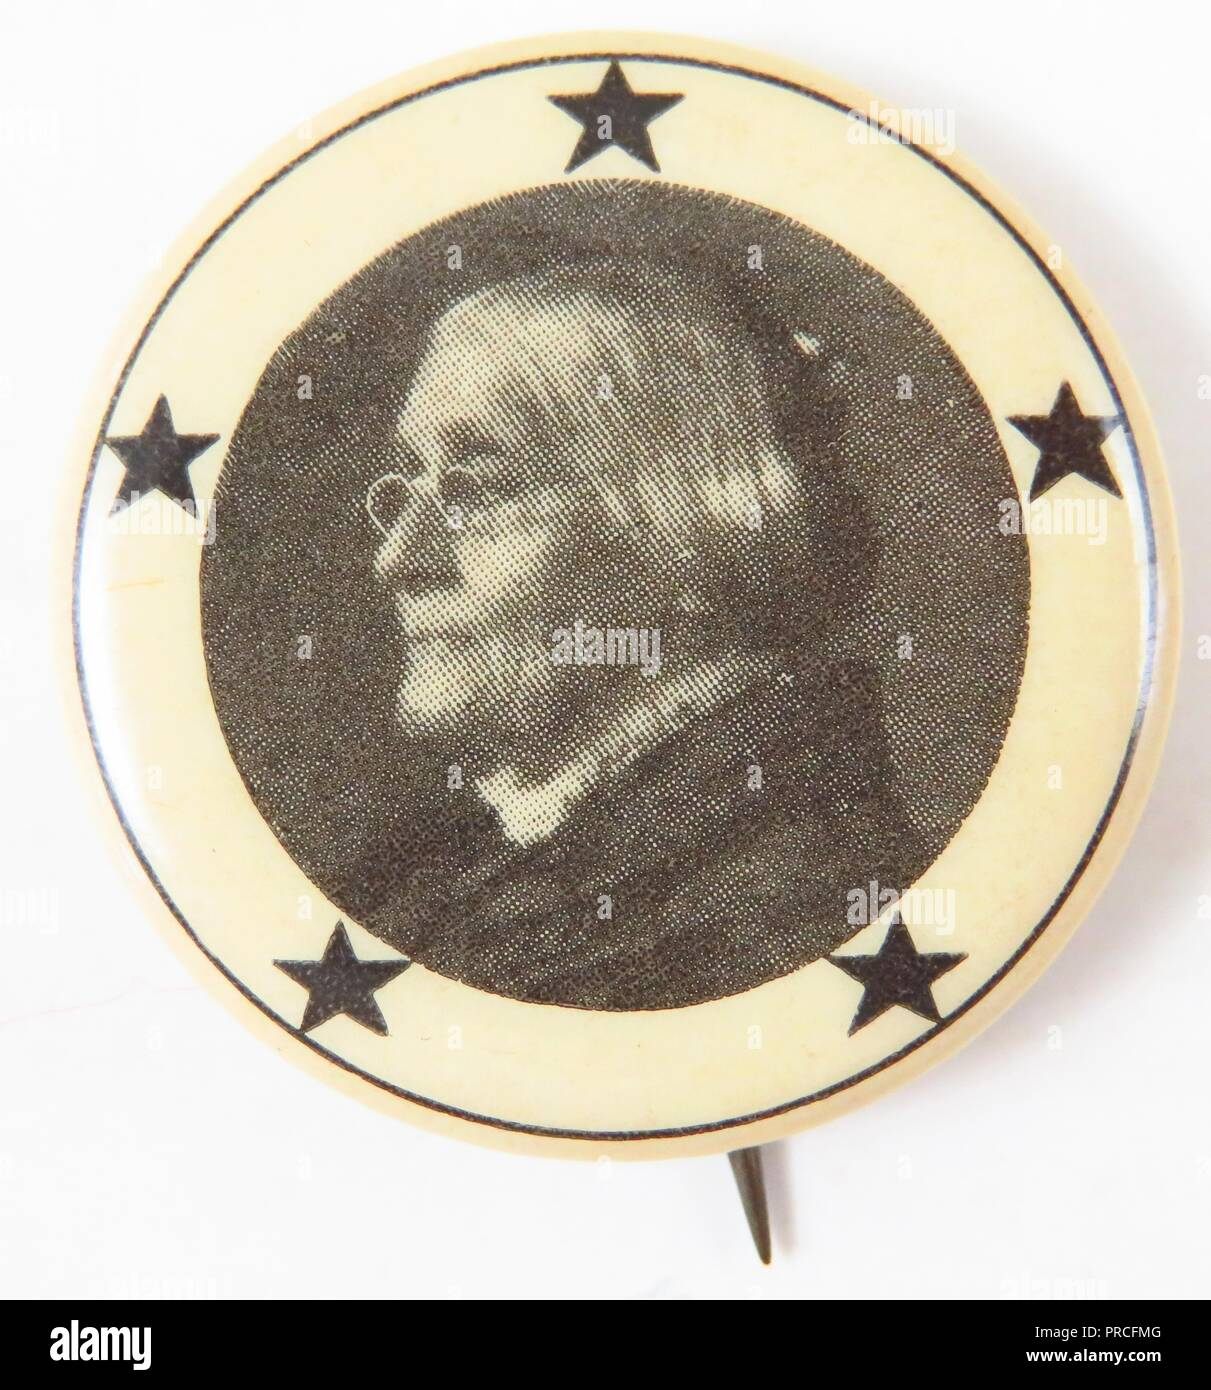 Black and white suffrage pin, with a portrait of Susan B Anthony, in profile, with five stars circling the portrait, celebrating Washington's successful suffrage campaign, making it the fifth state to grant women full access to the ballot, manufactured for the American market, 1910. Photography by Emilia van Beugen. () - Stock Image